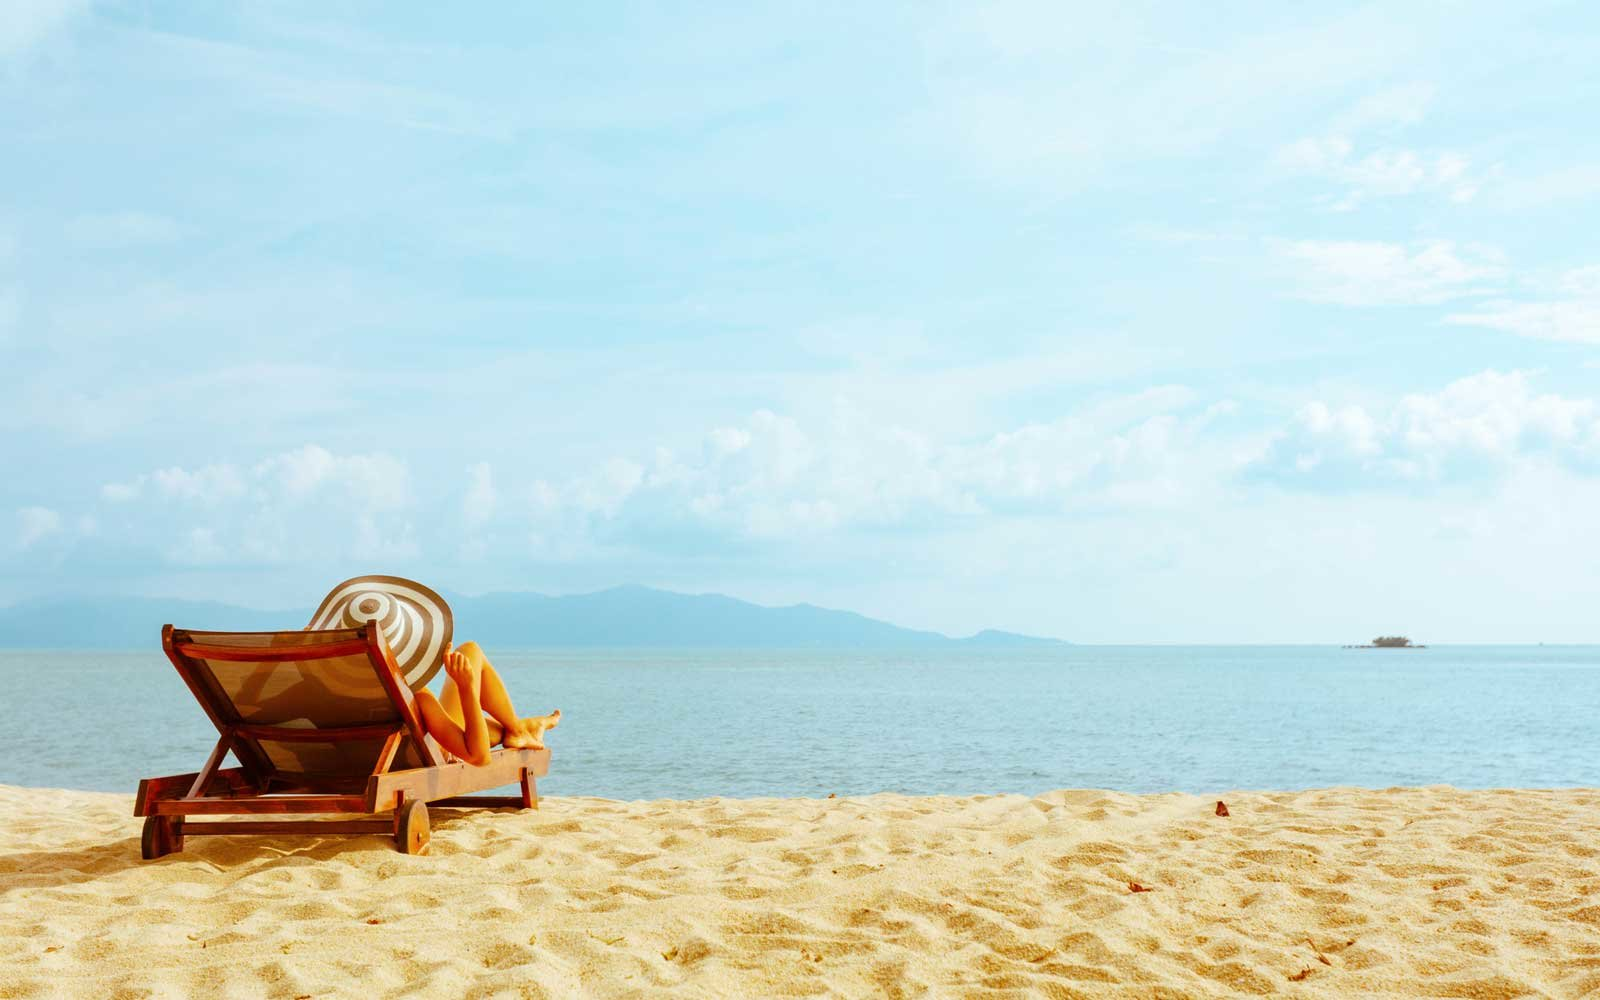 How to Get Extra Vacation Time Without Asking Your Boss